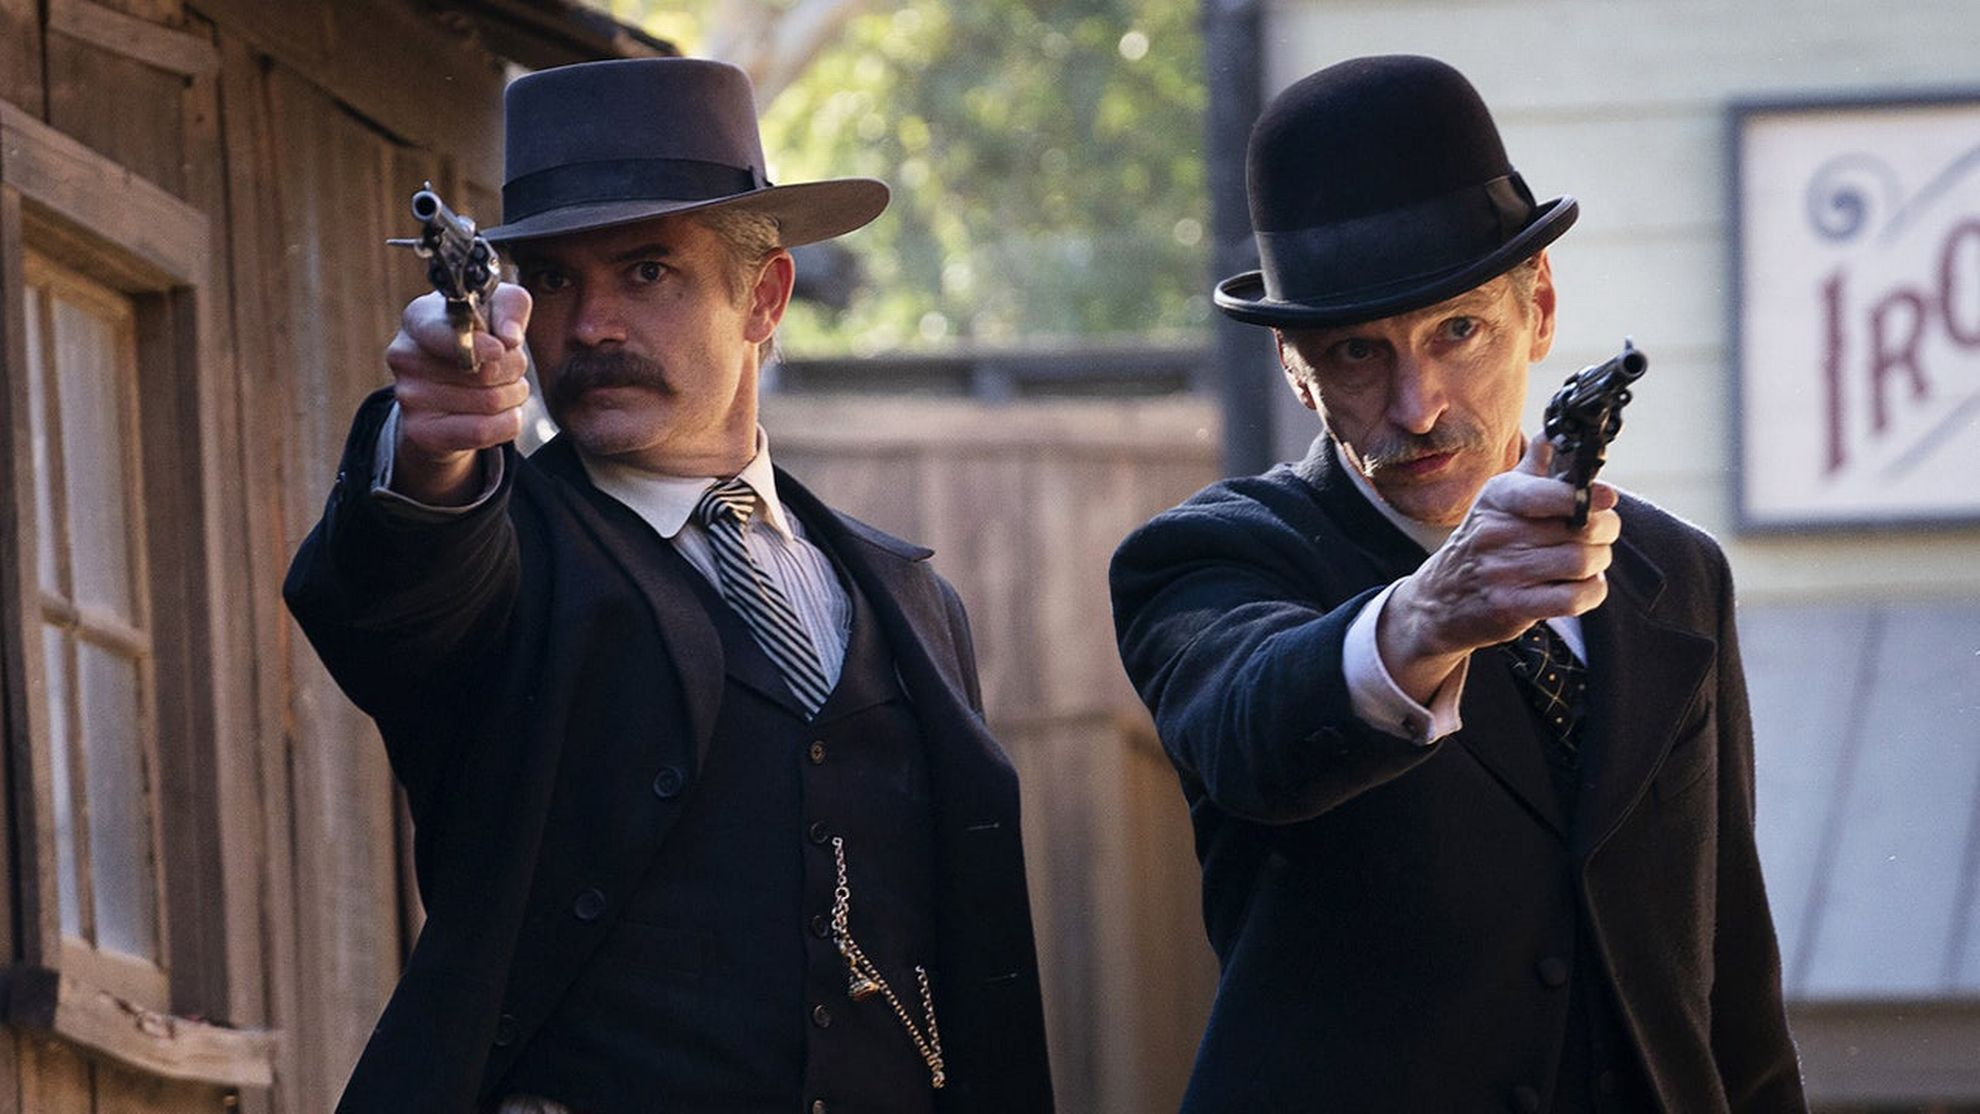 «MEAN STREETS»: Timothy Olyphant i «Deadwood: The Movie». 	Foto: Warrick Page / HBO Nordic